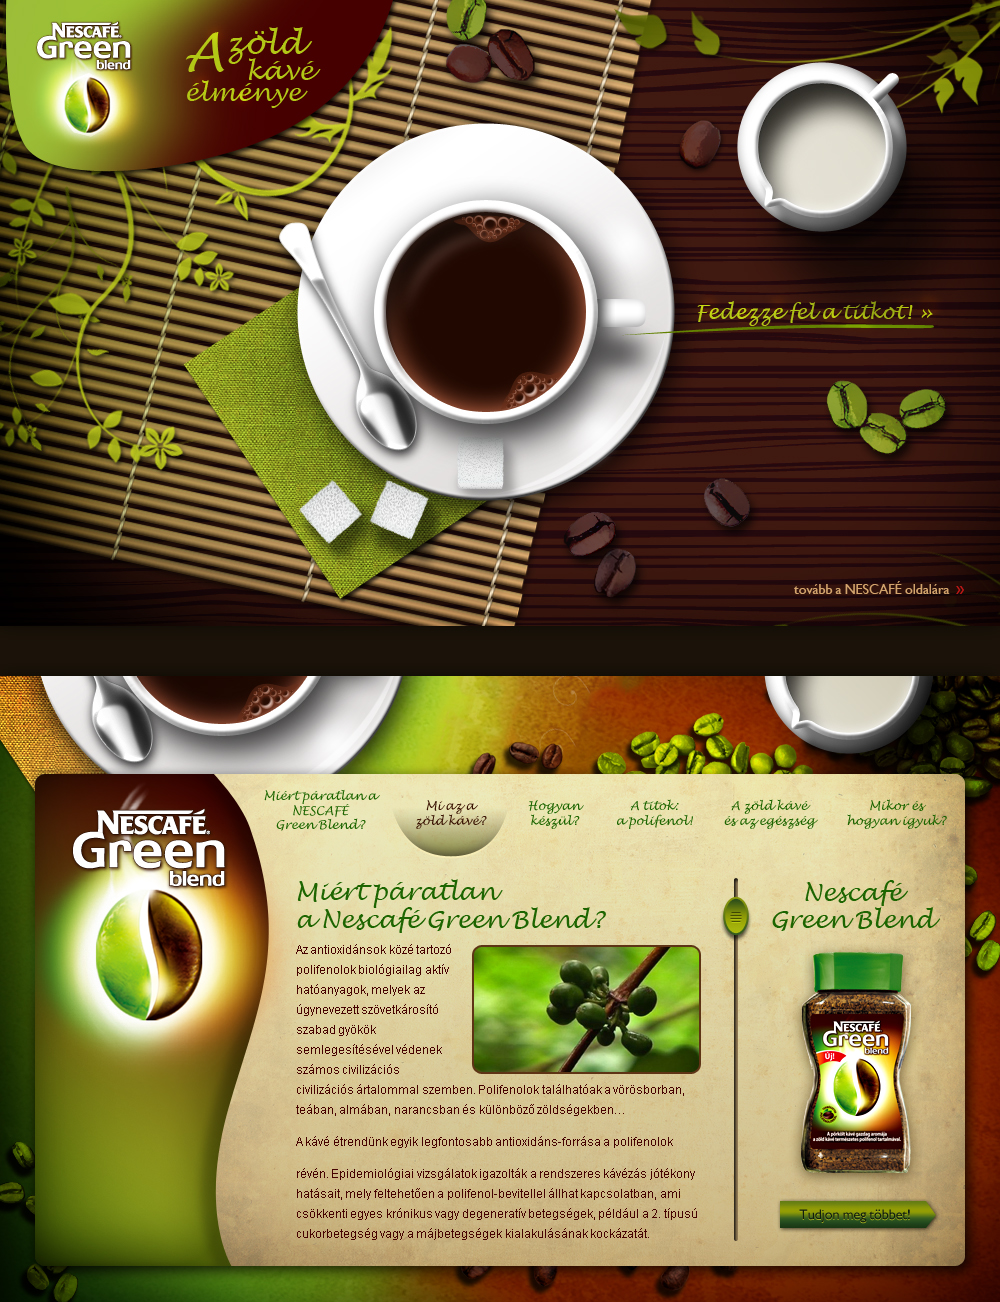 Nescafe Green Blend Promo Site By Floydworx On DeviantArt